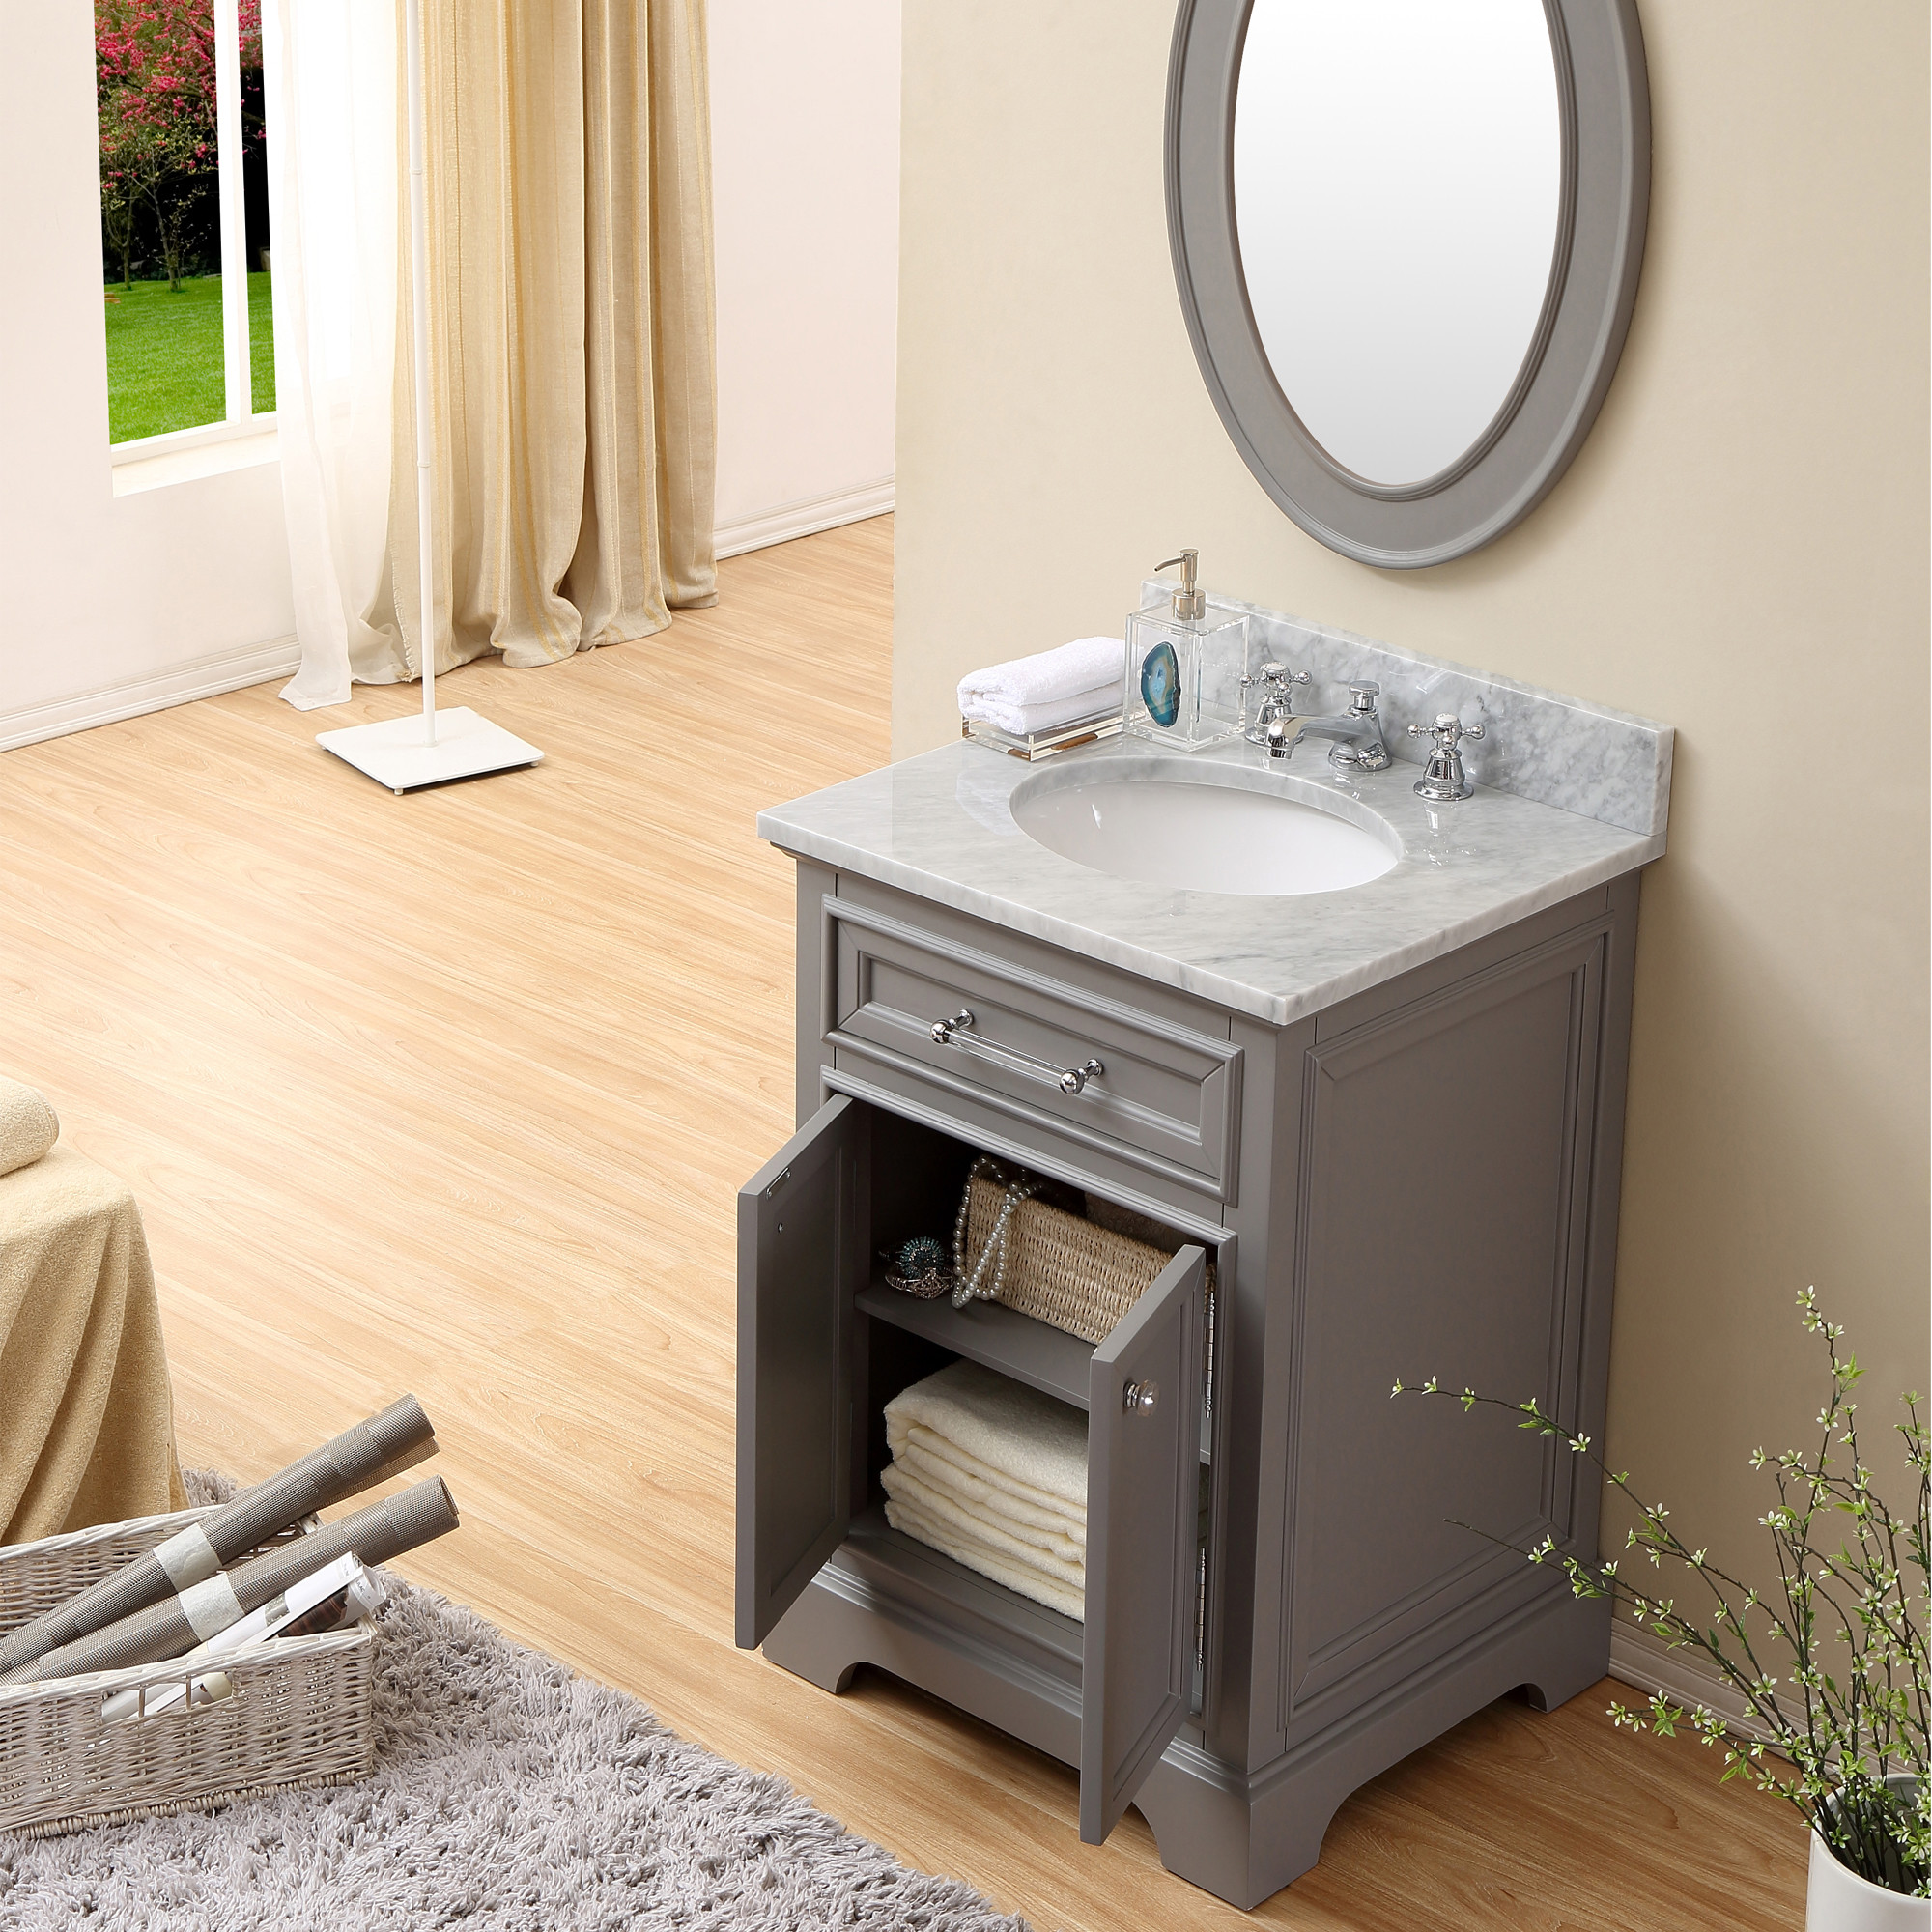 design bunch country sink ideas bathroom best vanity bathrooms sinks vanities cabinets for depot solutions home double inch tops of